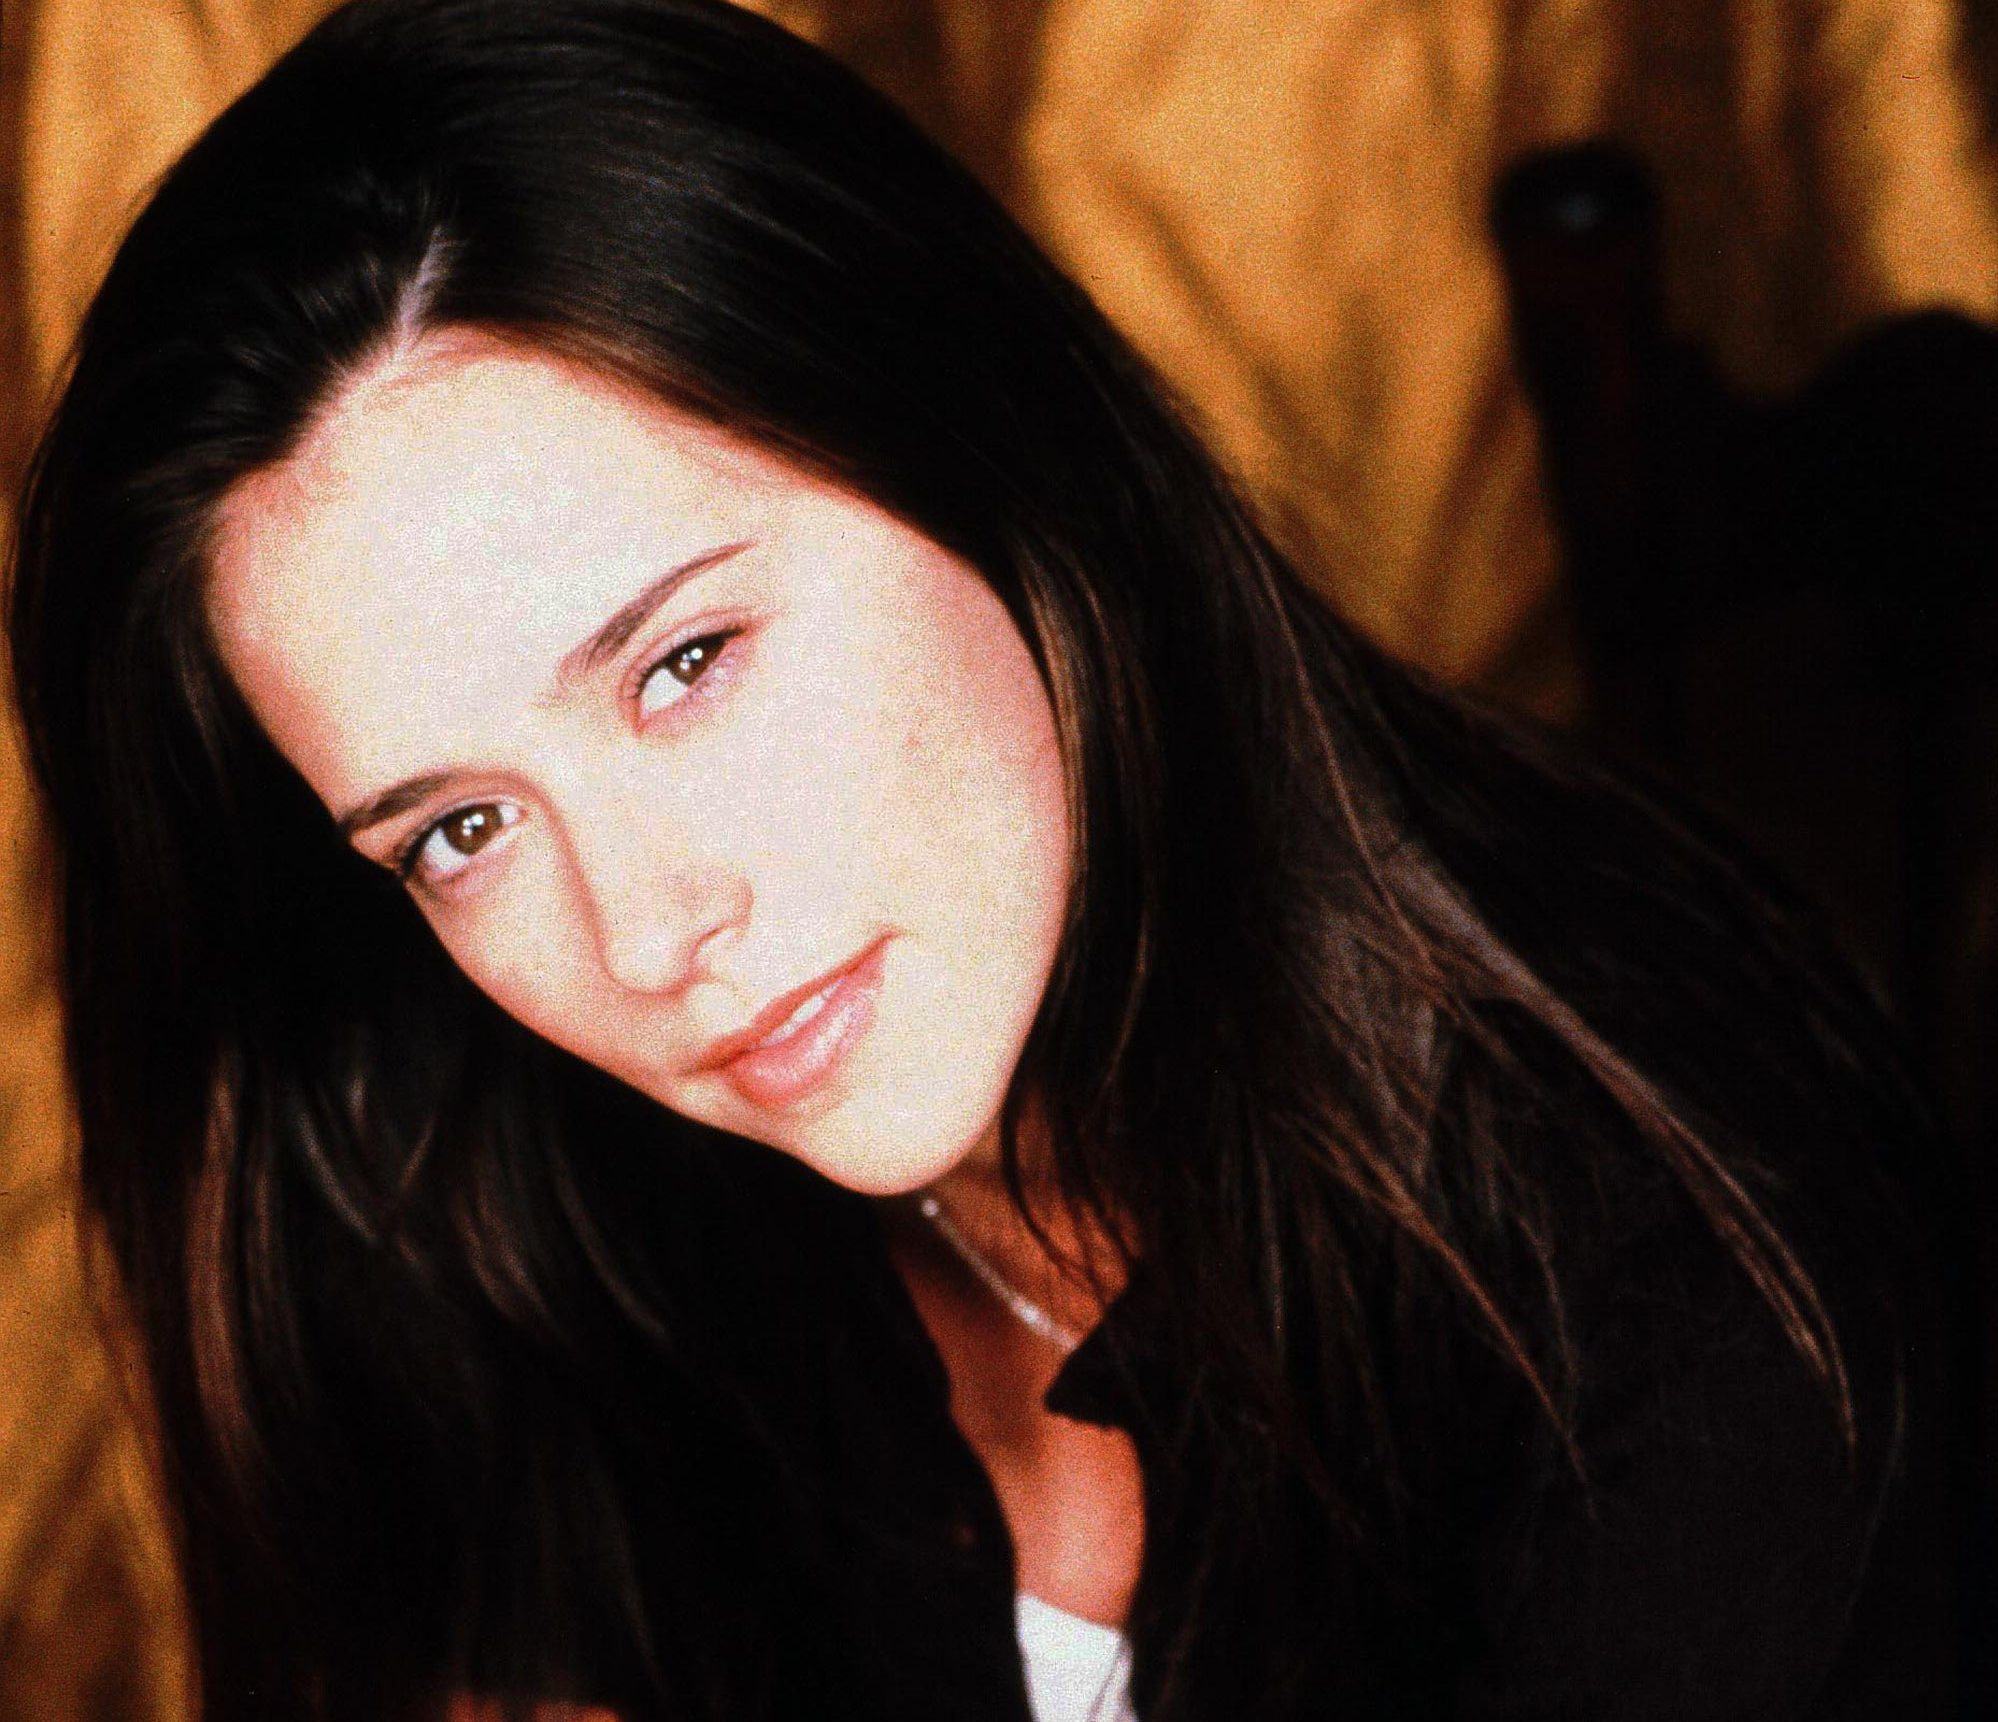 9068819 e1605259148462 21 90s TV Actresses We All Had A Crush On When We Were Younger